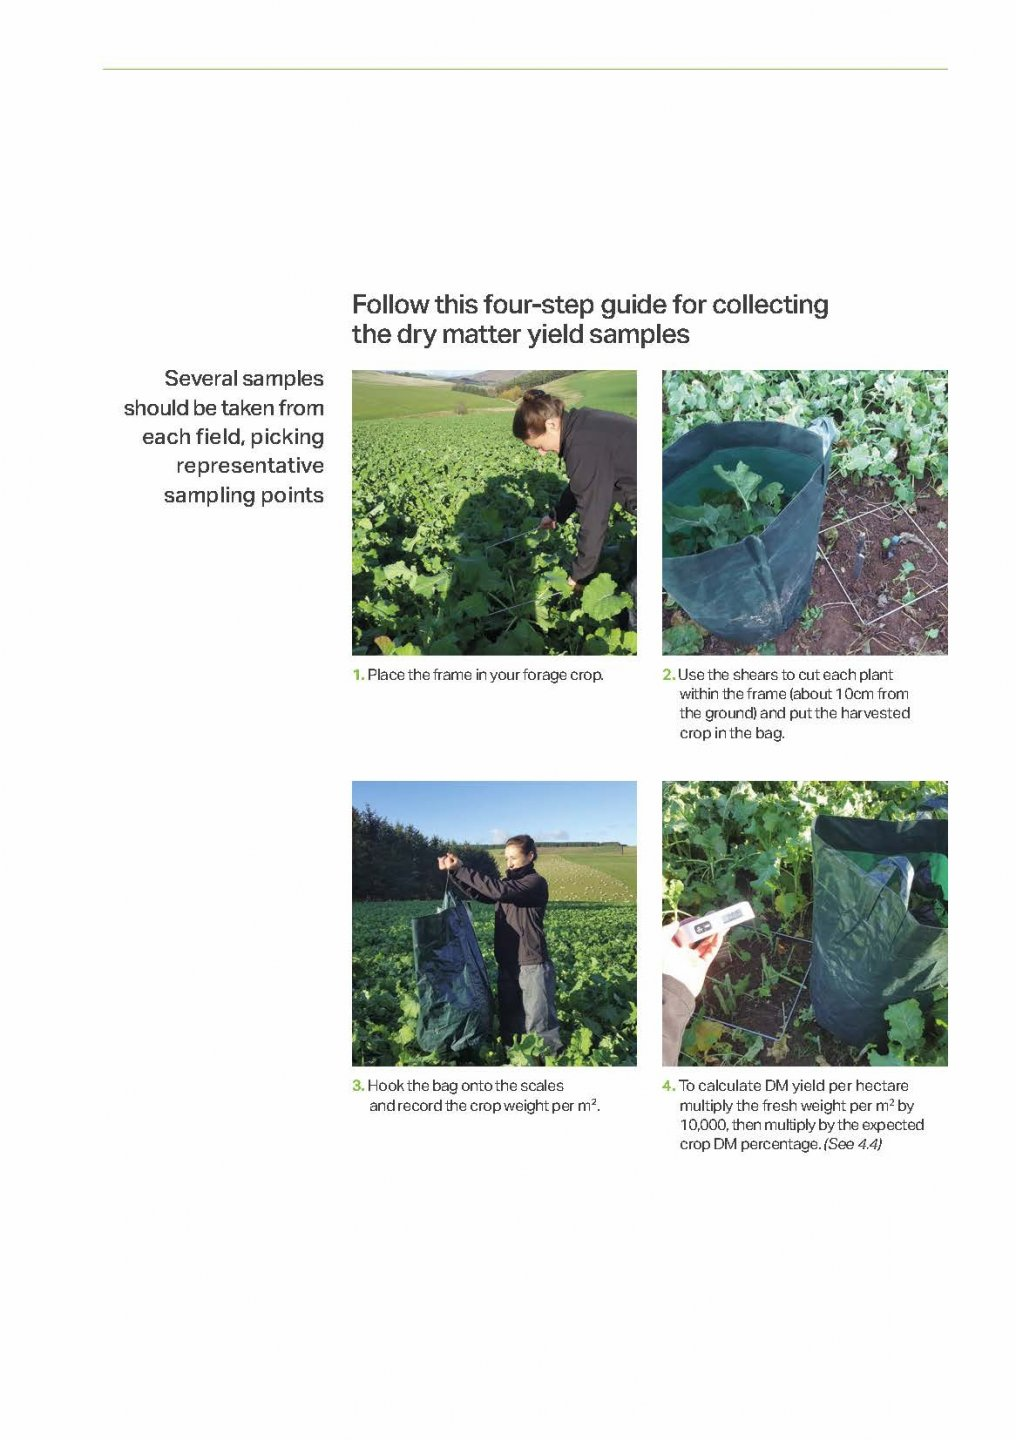 GGB_AGRI_107_Brassica_Growers_guide_2020_Page_12.jpg